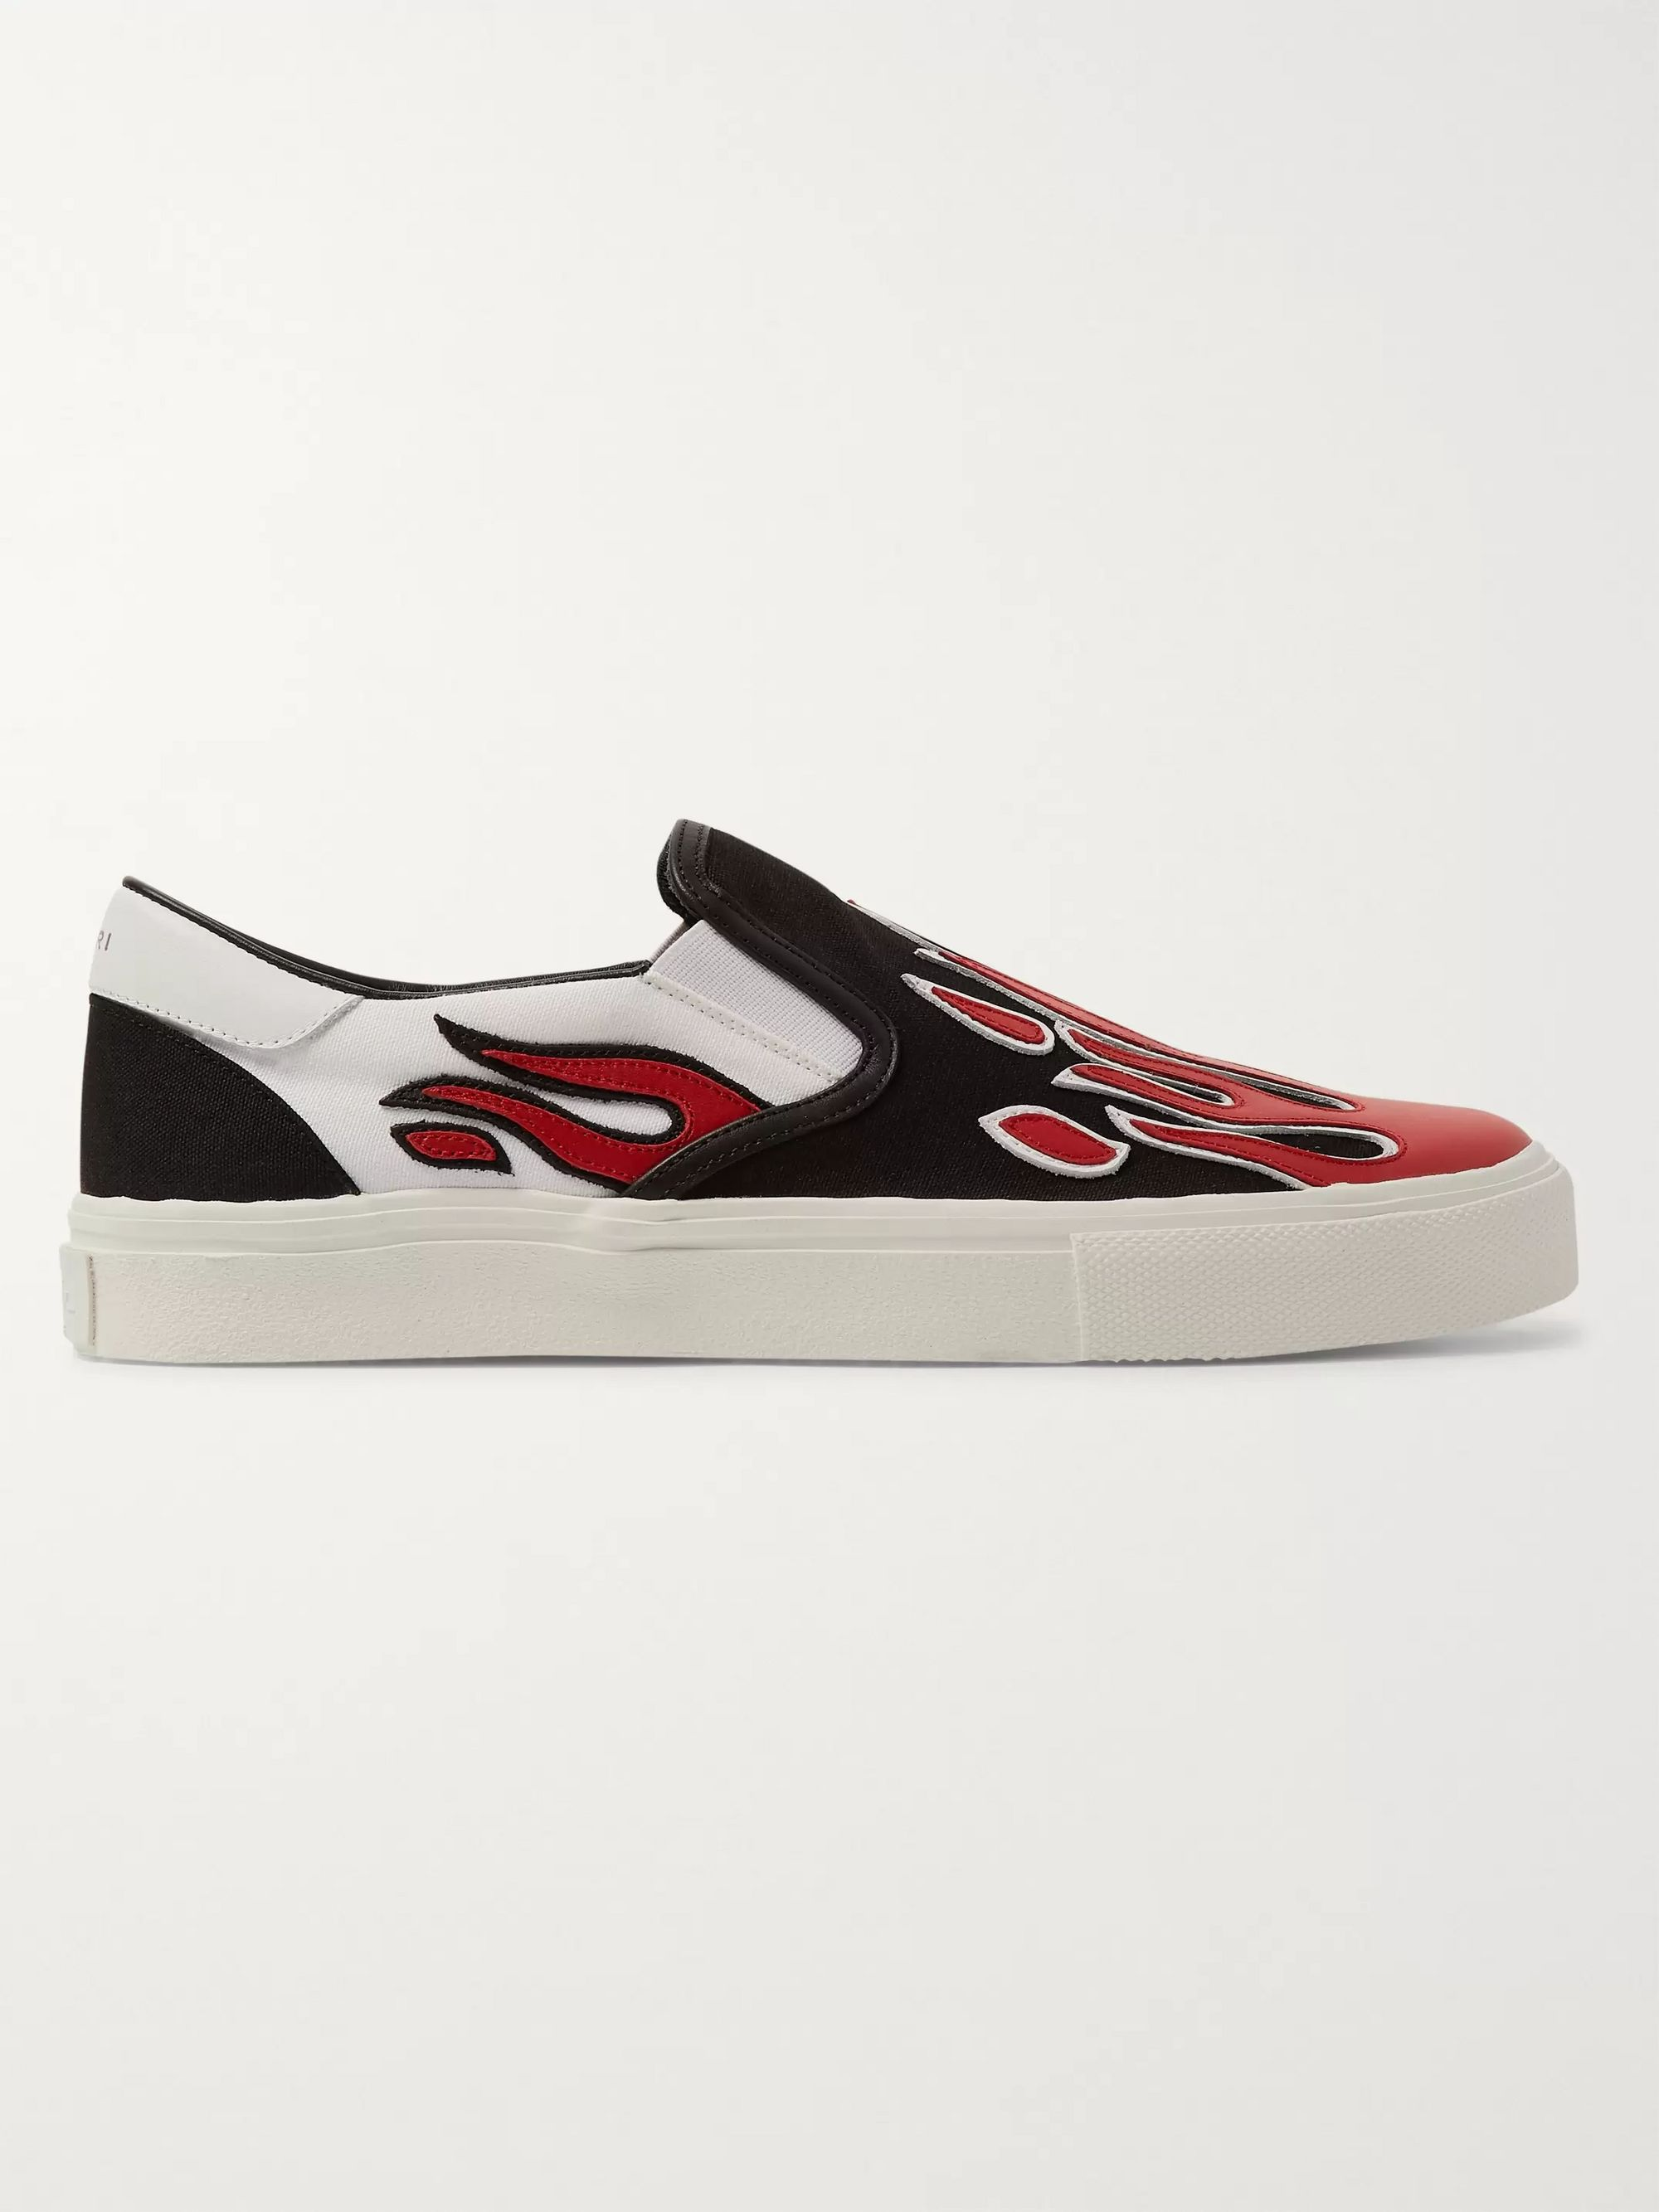 AMIRI Skel Toe Leather-Appliquéd Canvas Slip-On Sneakers